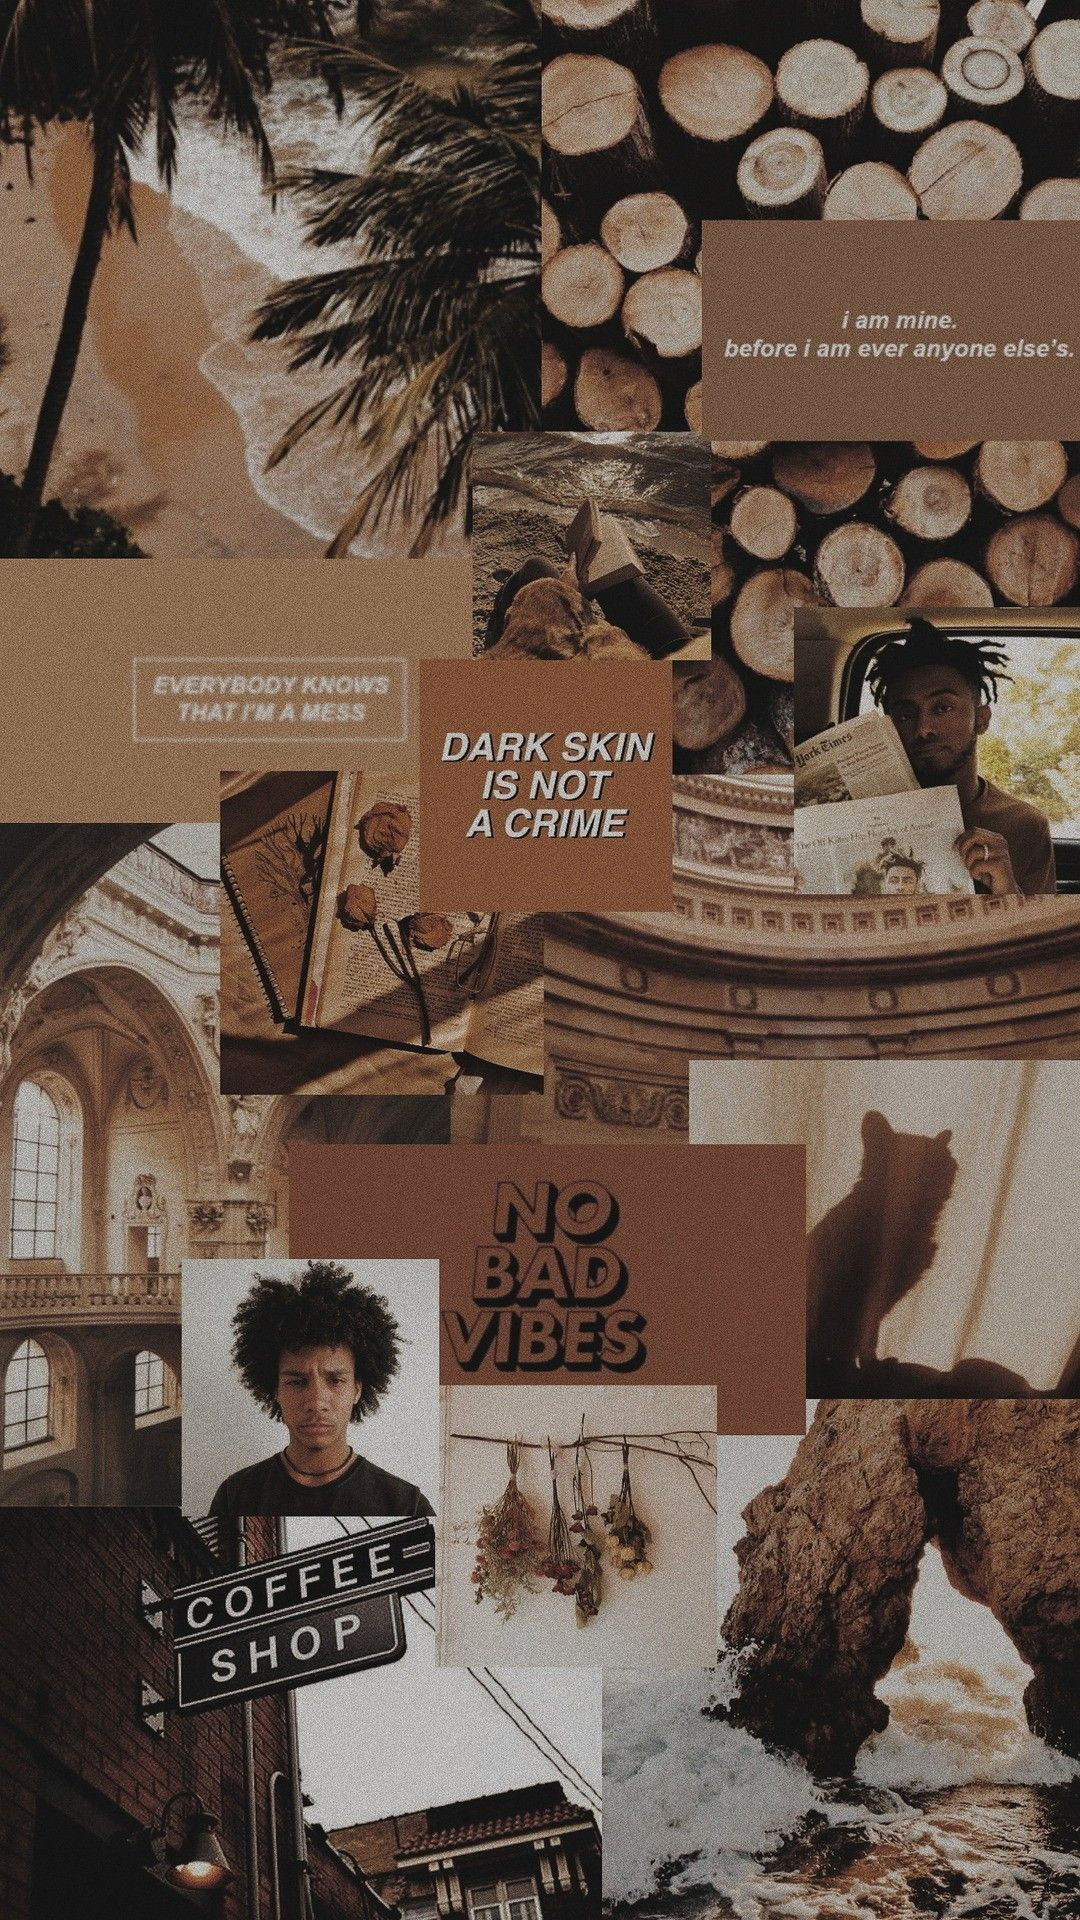 Such as png, jpg, animated gifs, pic art, symbol, blackandwhite, images, etc. color brown aesthetic collage/lockscreen #marlonchagas in ...